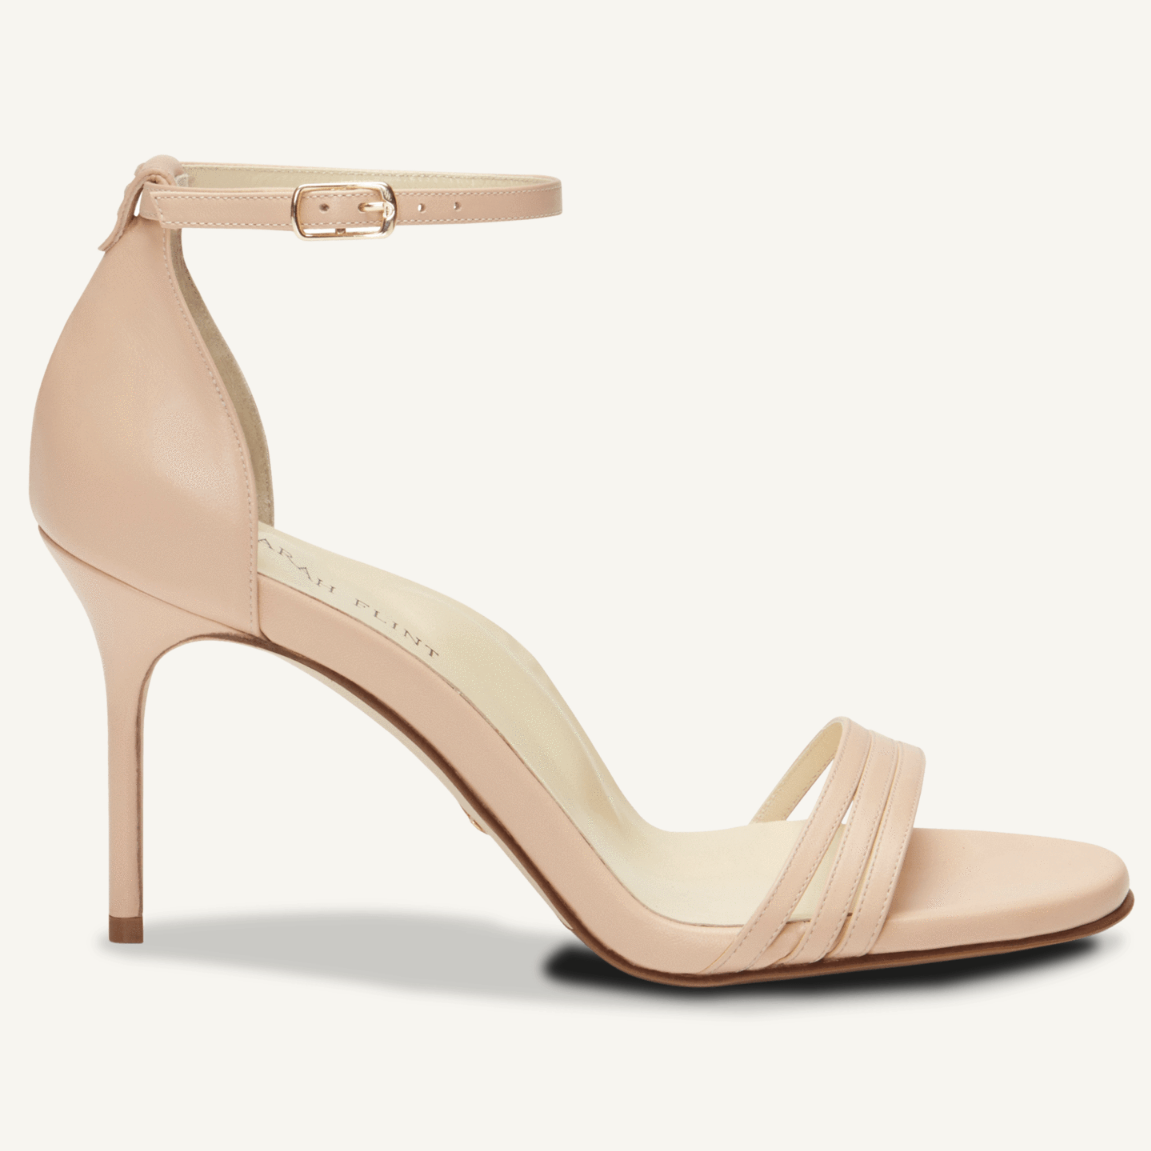 Sarah Flint Perfect Sandal x Stacie Flinner 4